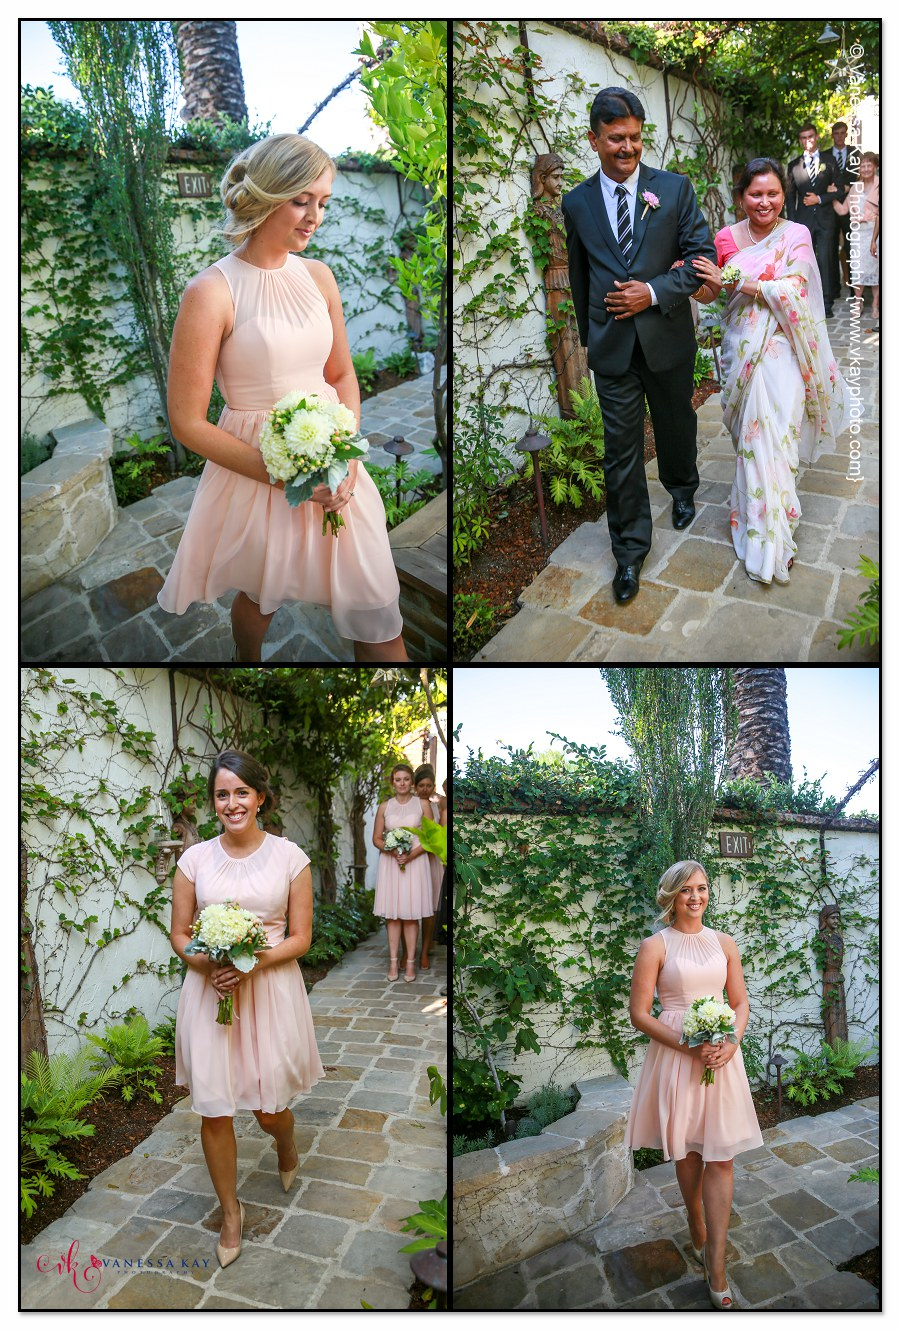 Villa San Juan Capistrano Singh Wedding and Reception 1